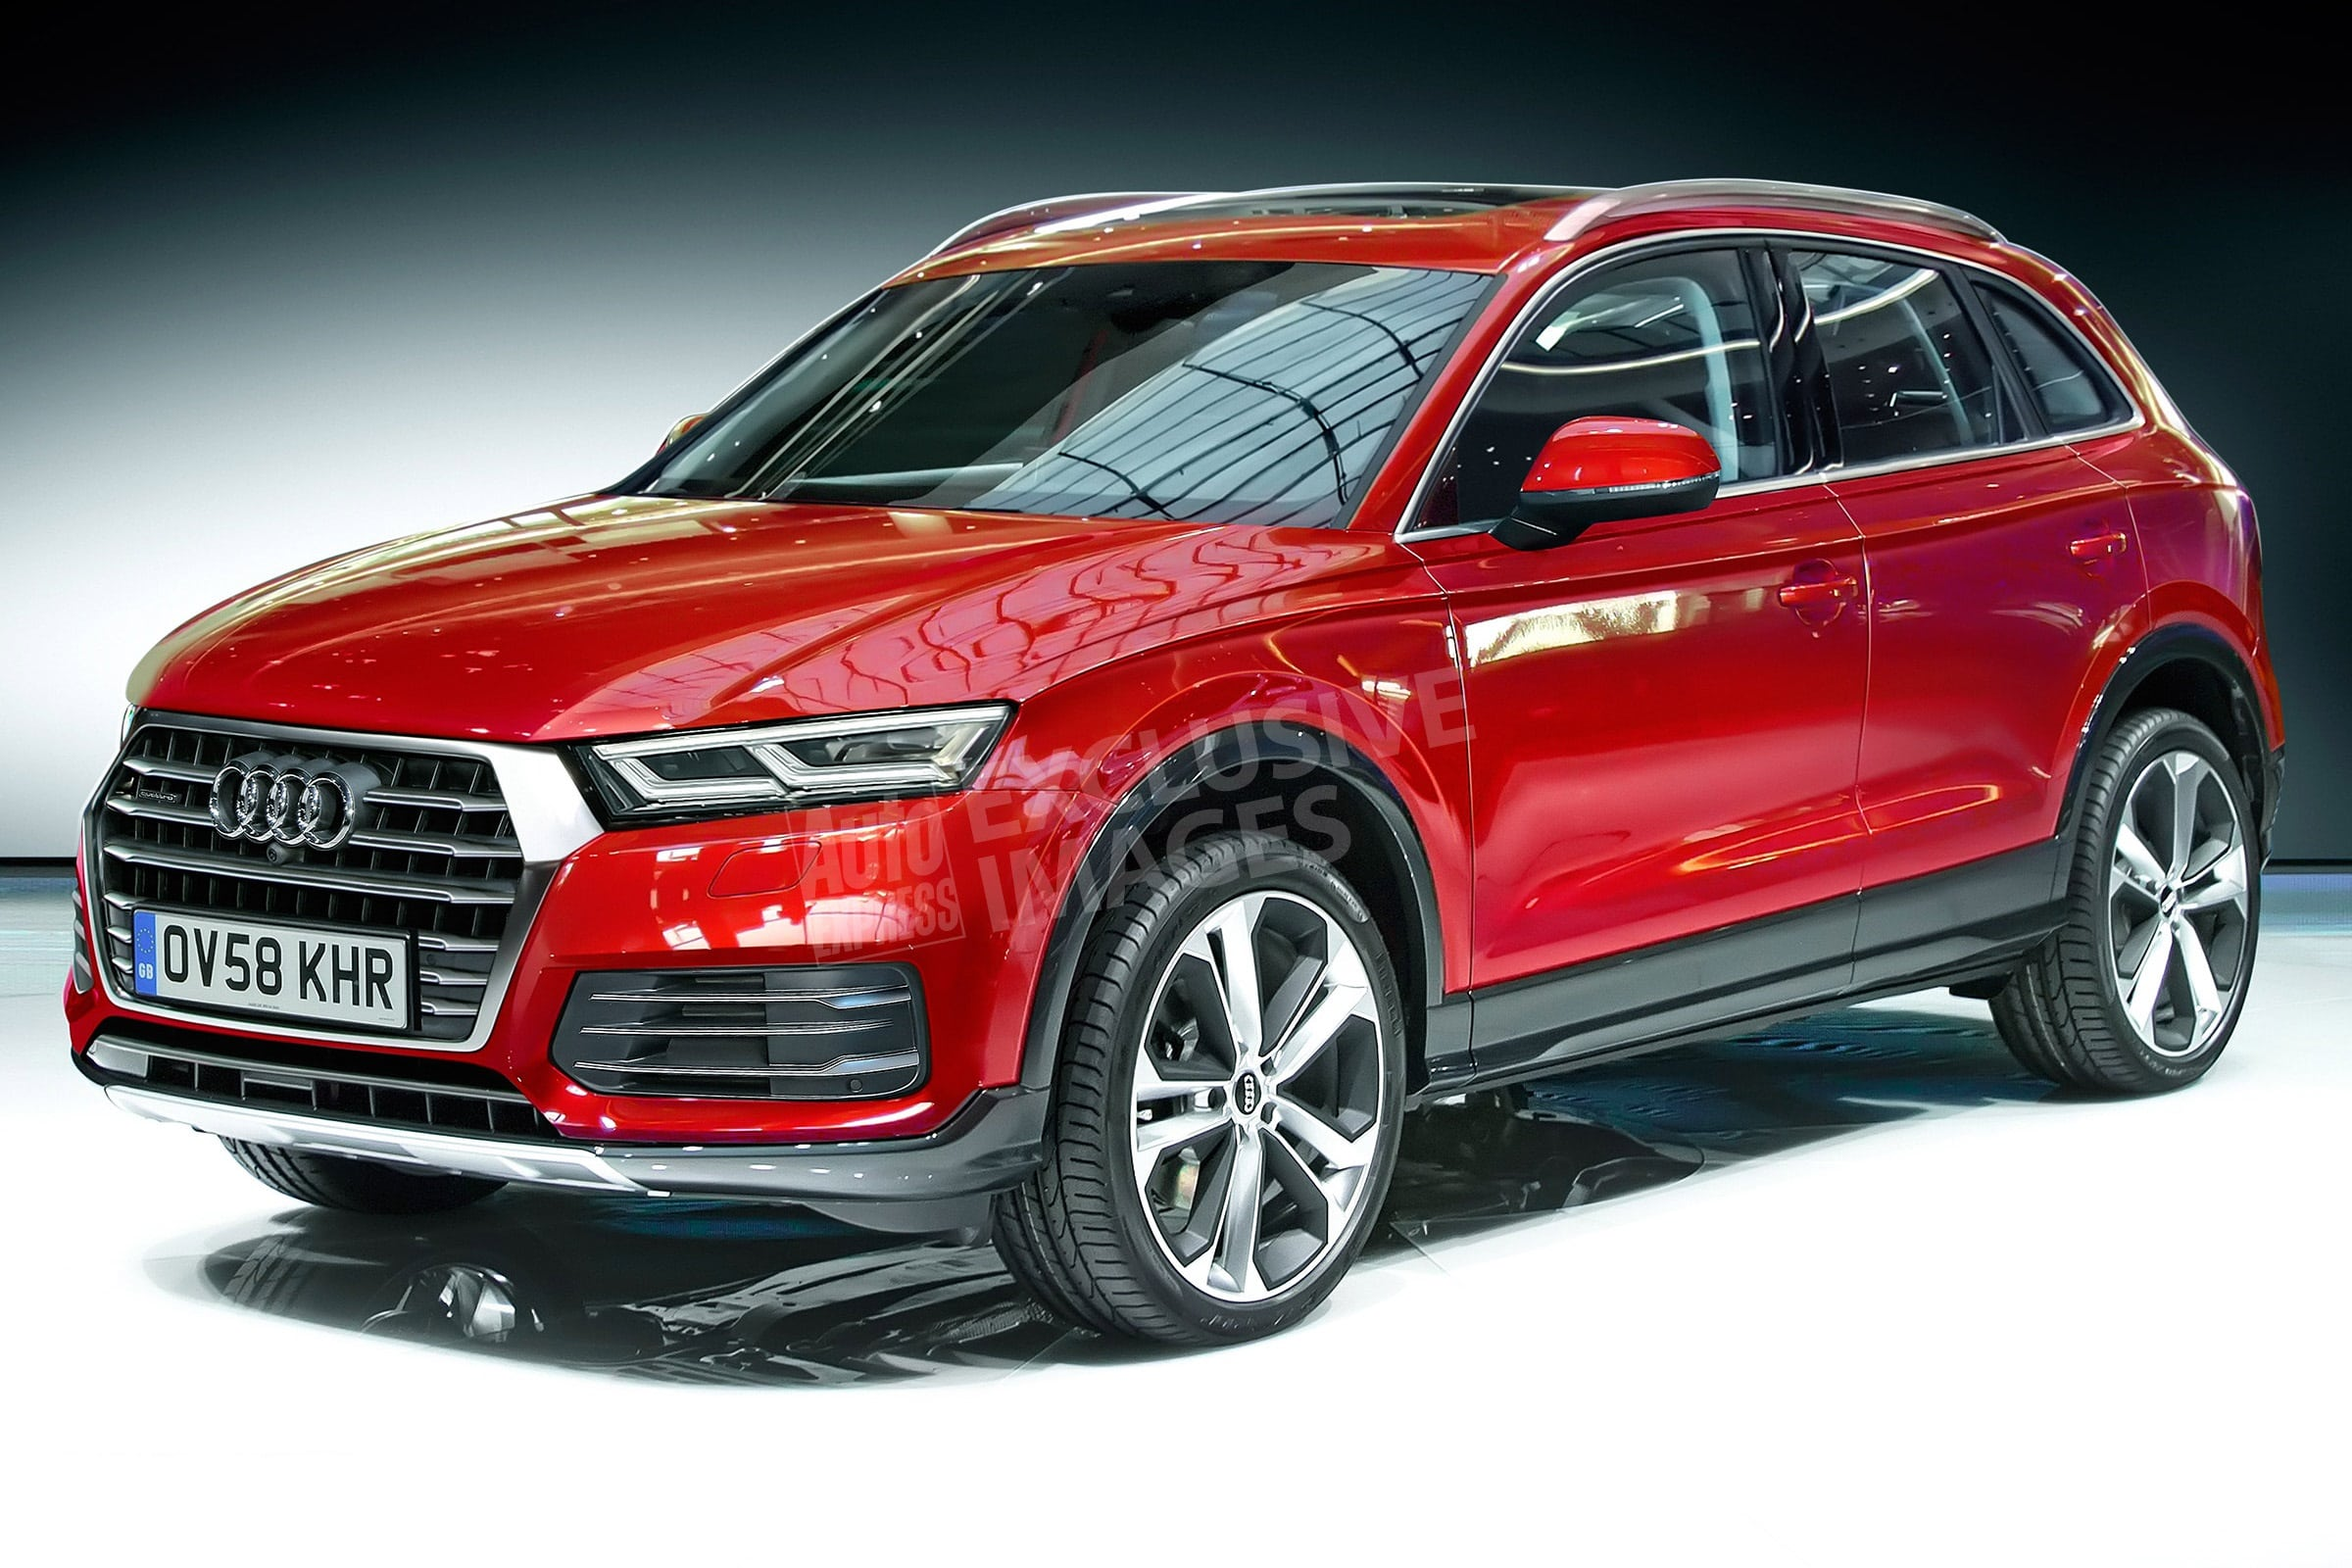 Audi Q5 II Widescreen for desktop